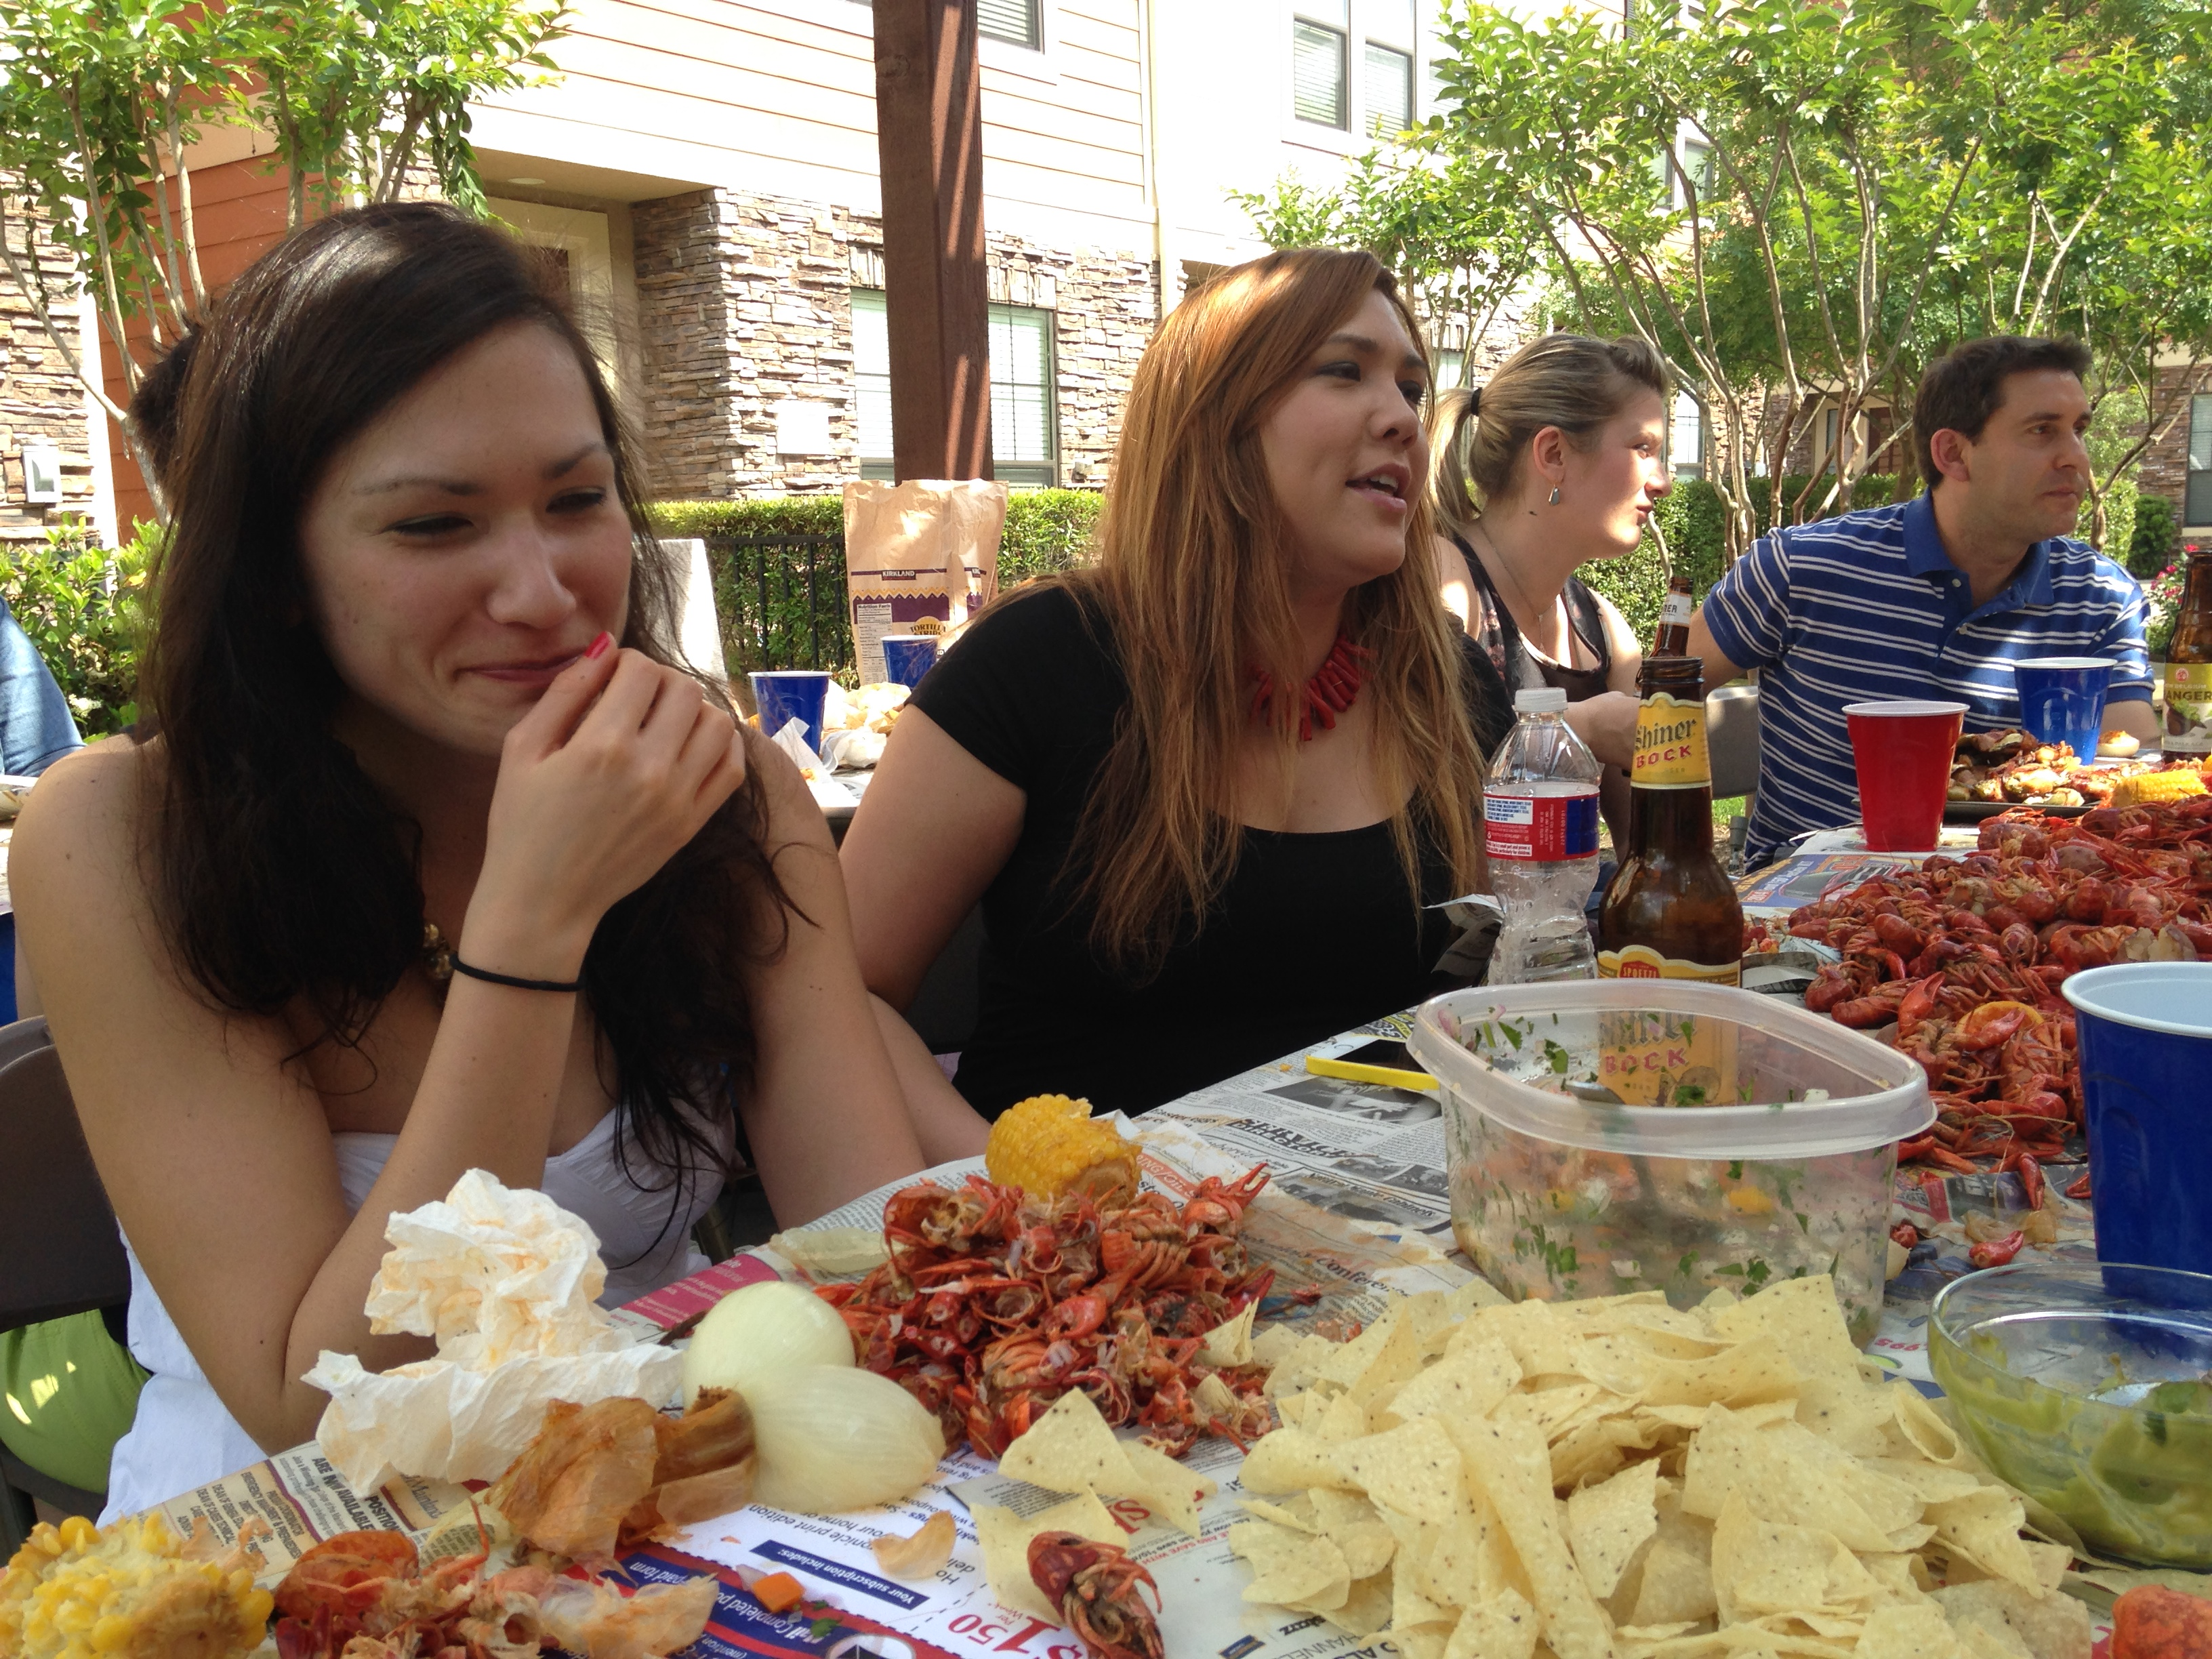 More from that Texas crawfish boil (because it's more dynamic than a shot of me writing. Also, there are no shots of me writing. Hop to!)